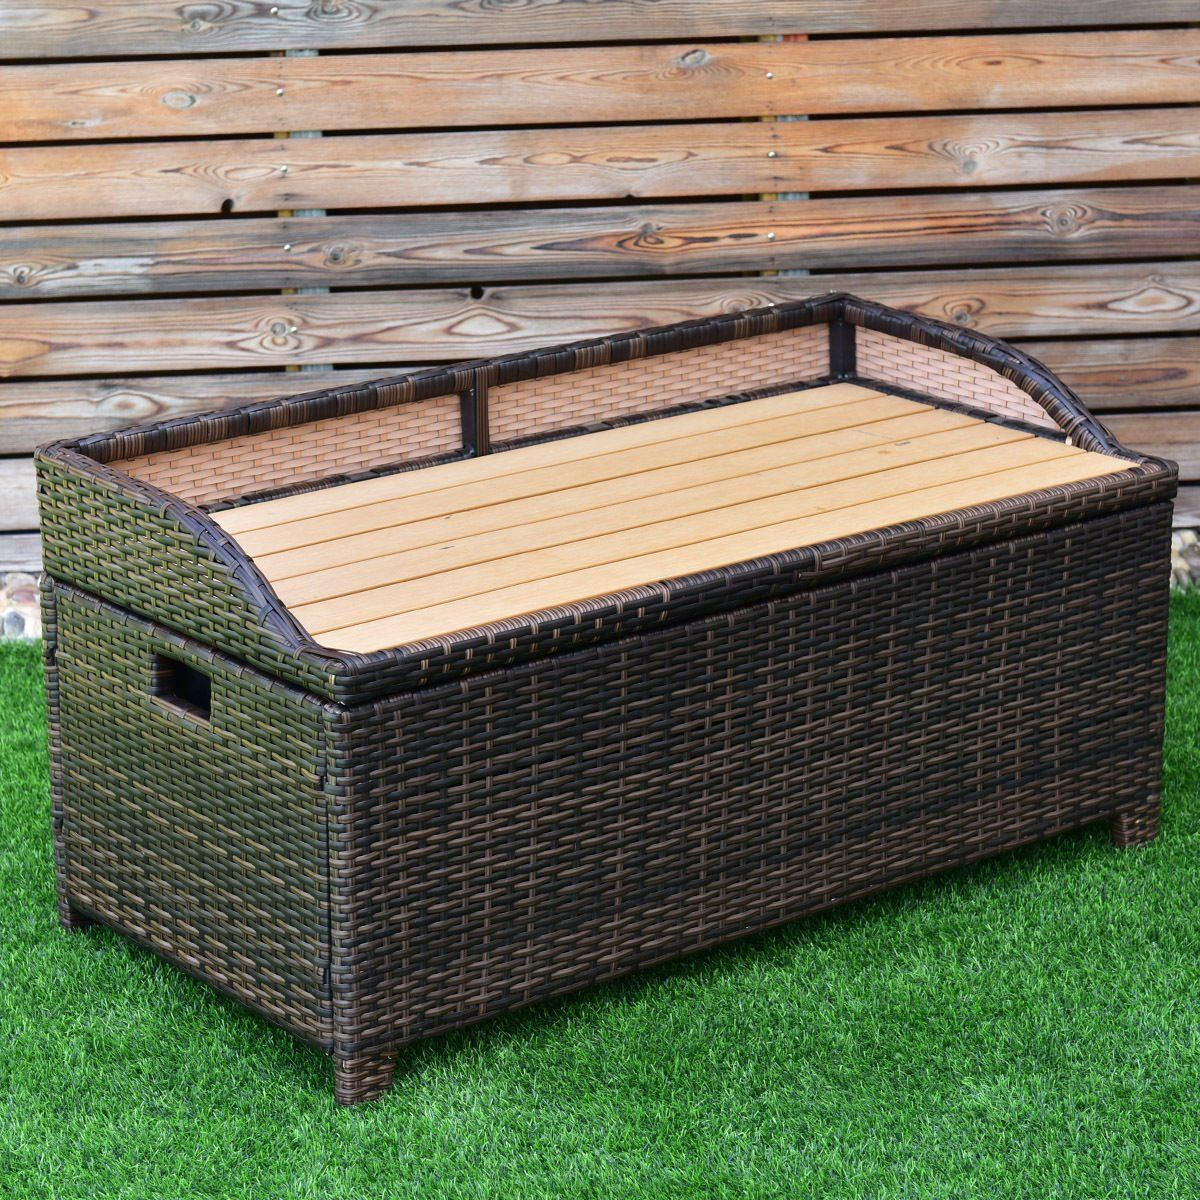 Tangkula Wicker Deck Box 50 Gallon Patio Outdoor Pool Rattan Container Storage Box Bench Seat Continue To Resin Patio Furniture Wicker Chest Outdoor Wicker